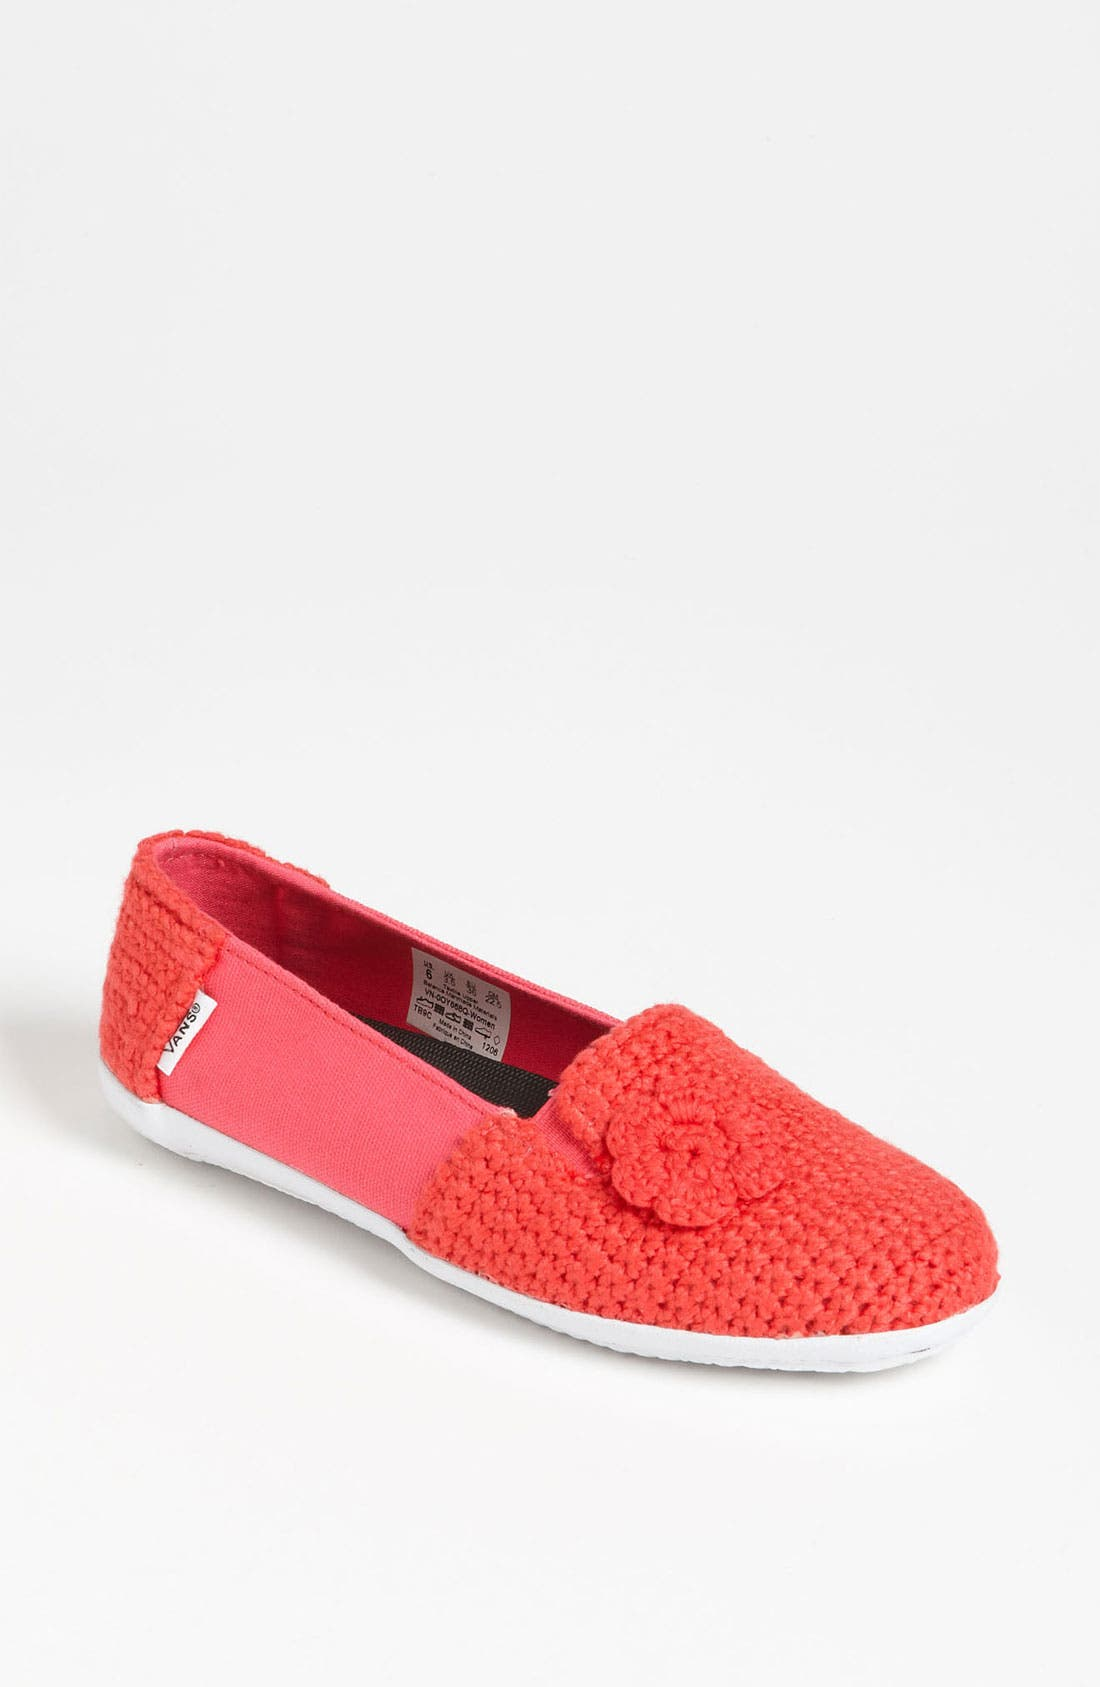 Alternate Image 1 Selected - Vans + Krochet Kids 'Bixie' Crochet Slip-On